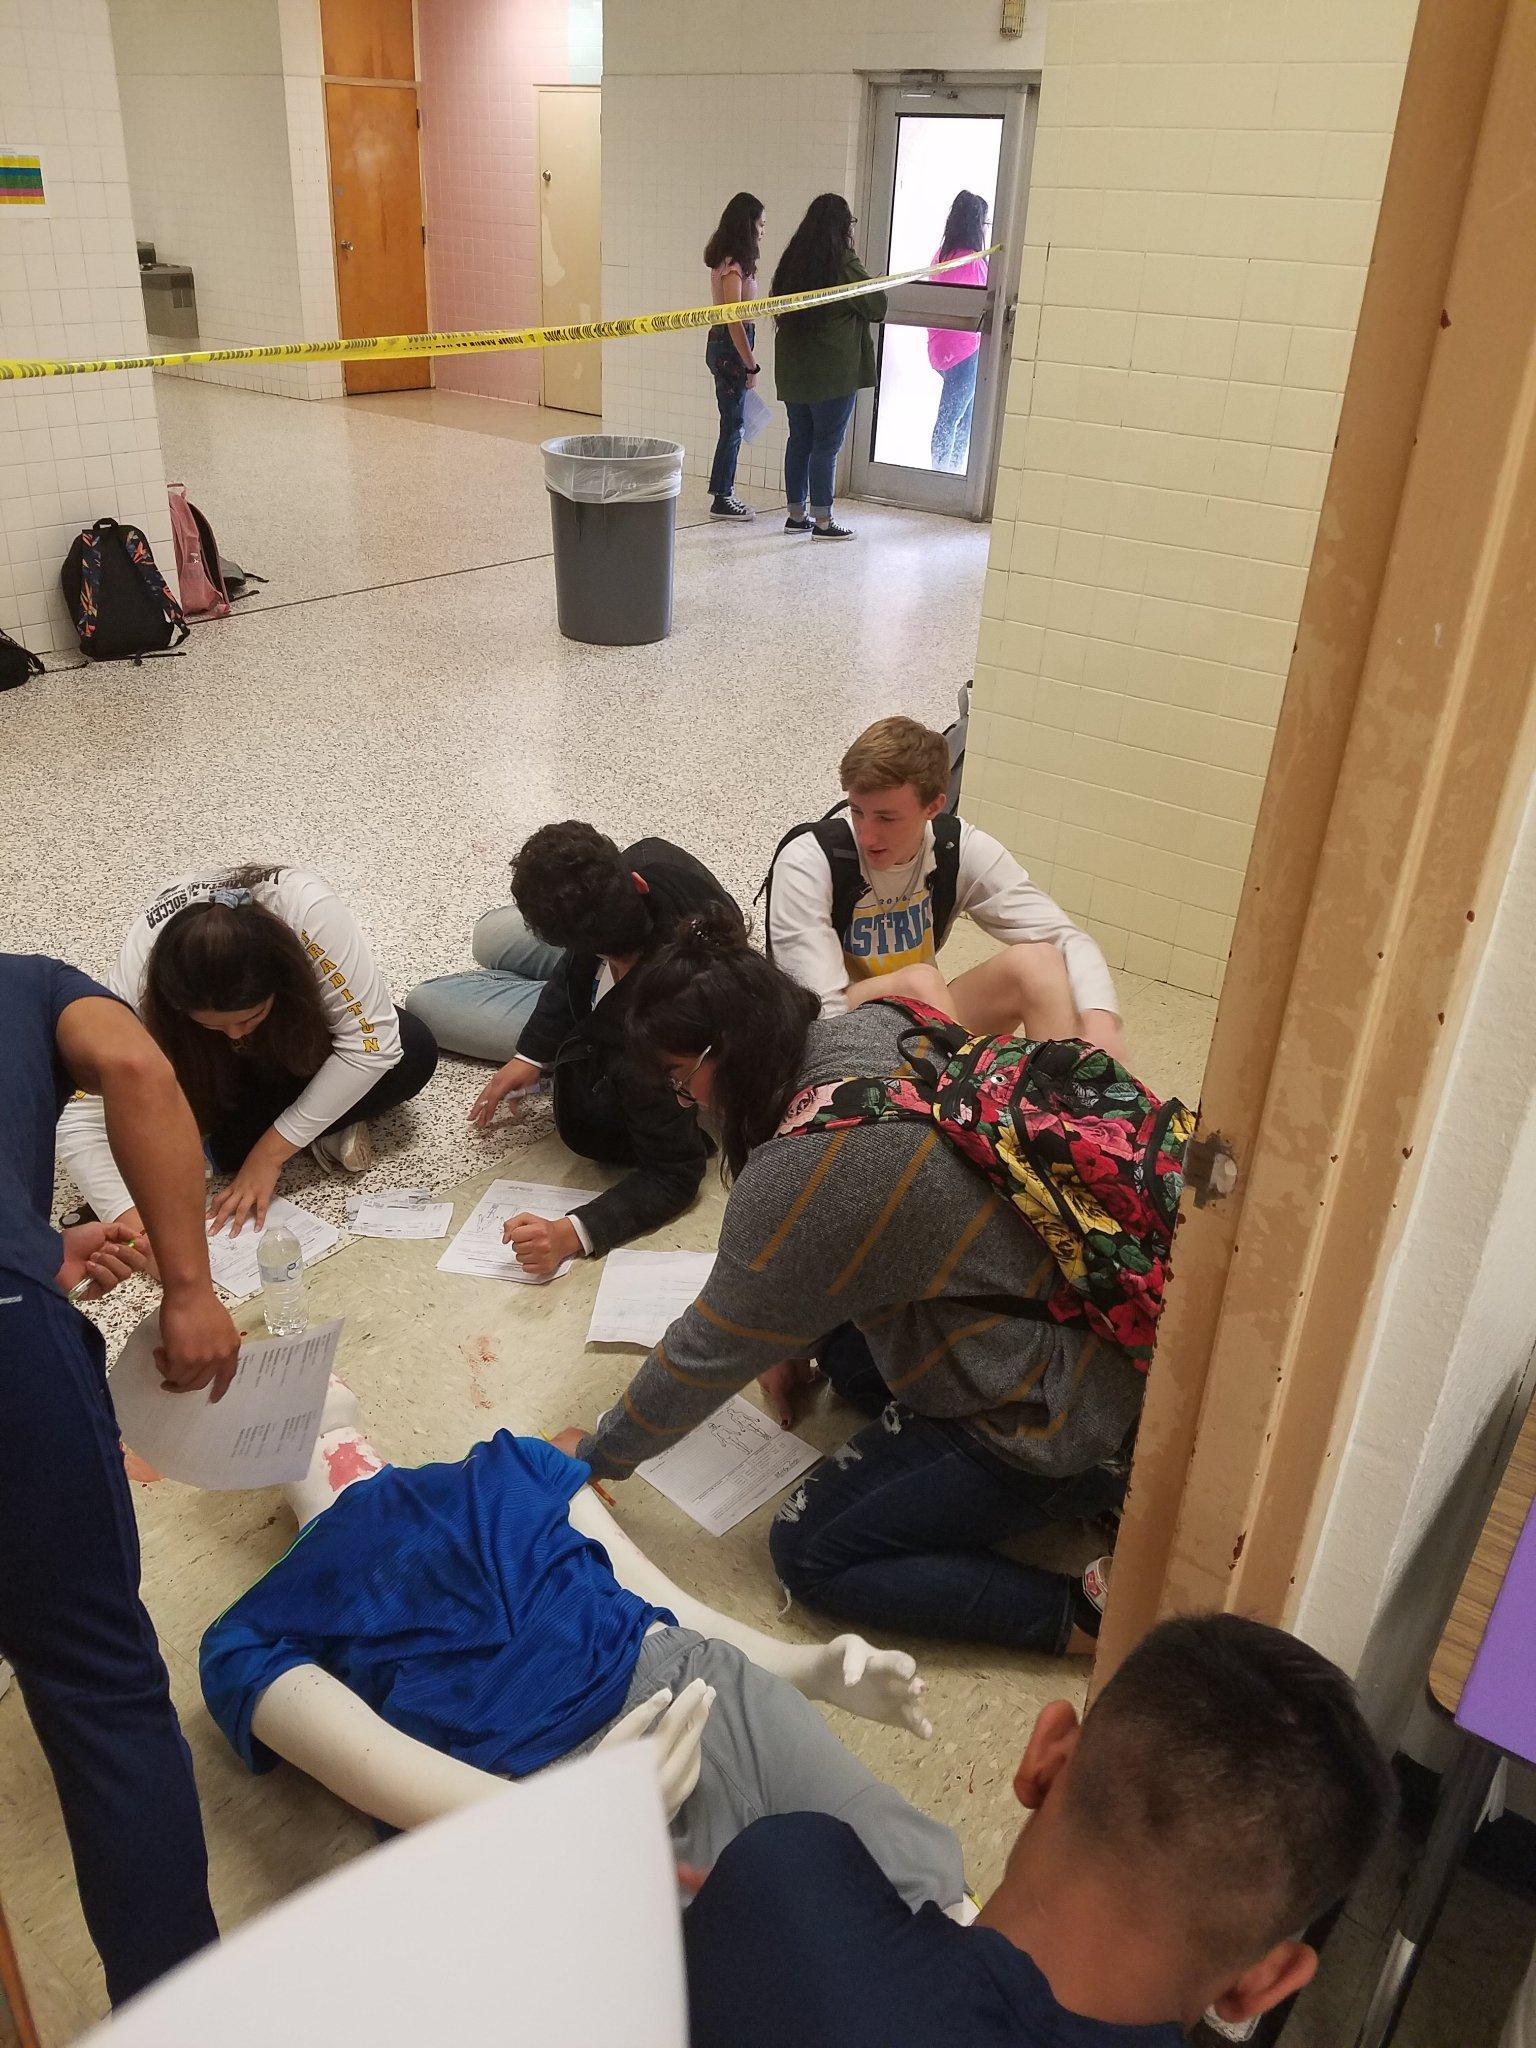 students sitting in a circle on the floor working on a project